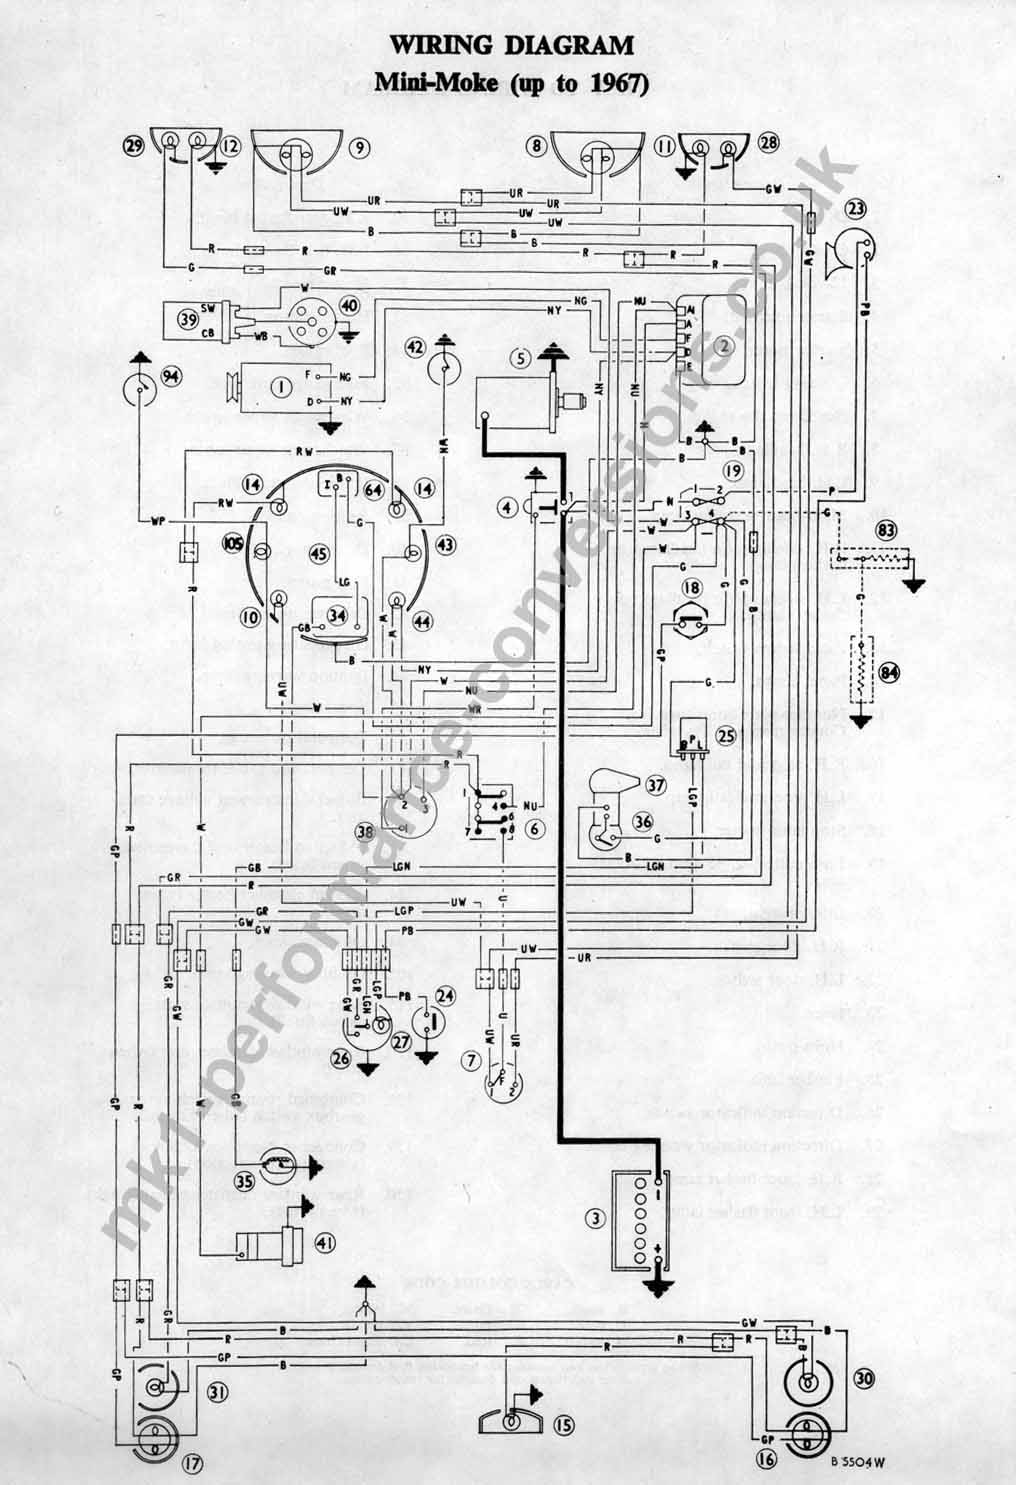 hight resolution of classic mini dodge charger wiring schematic 1967 mini wiring diagram